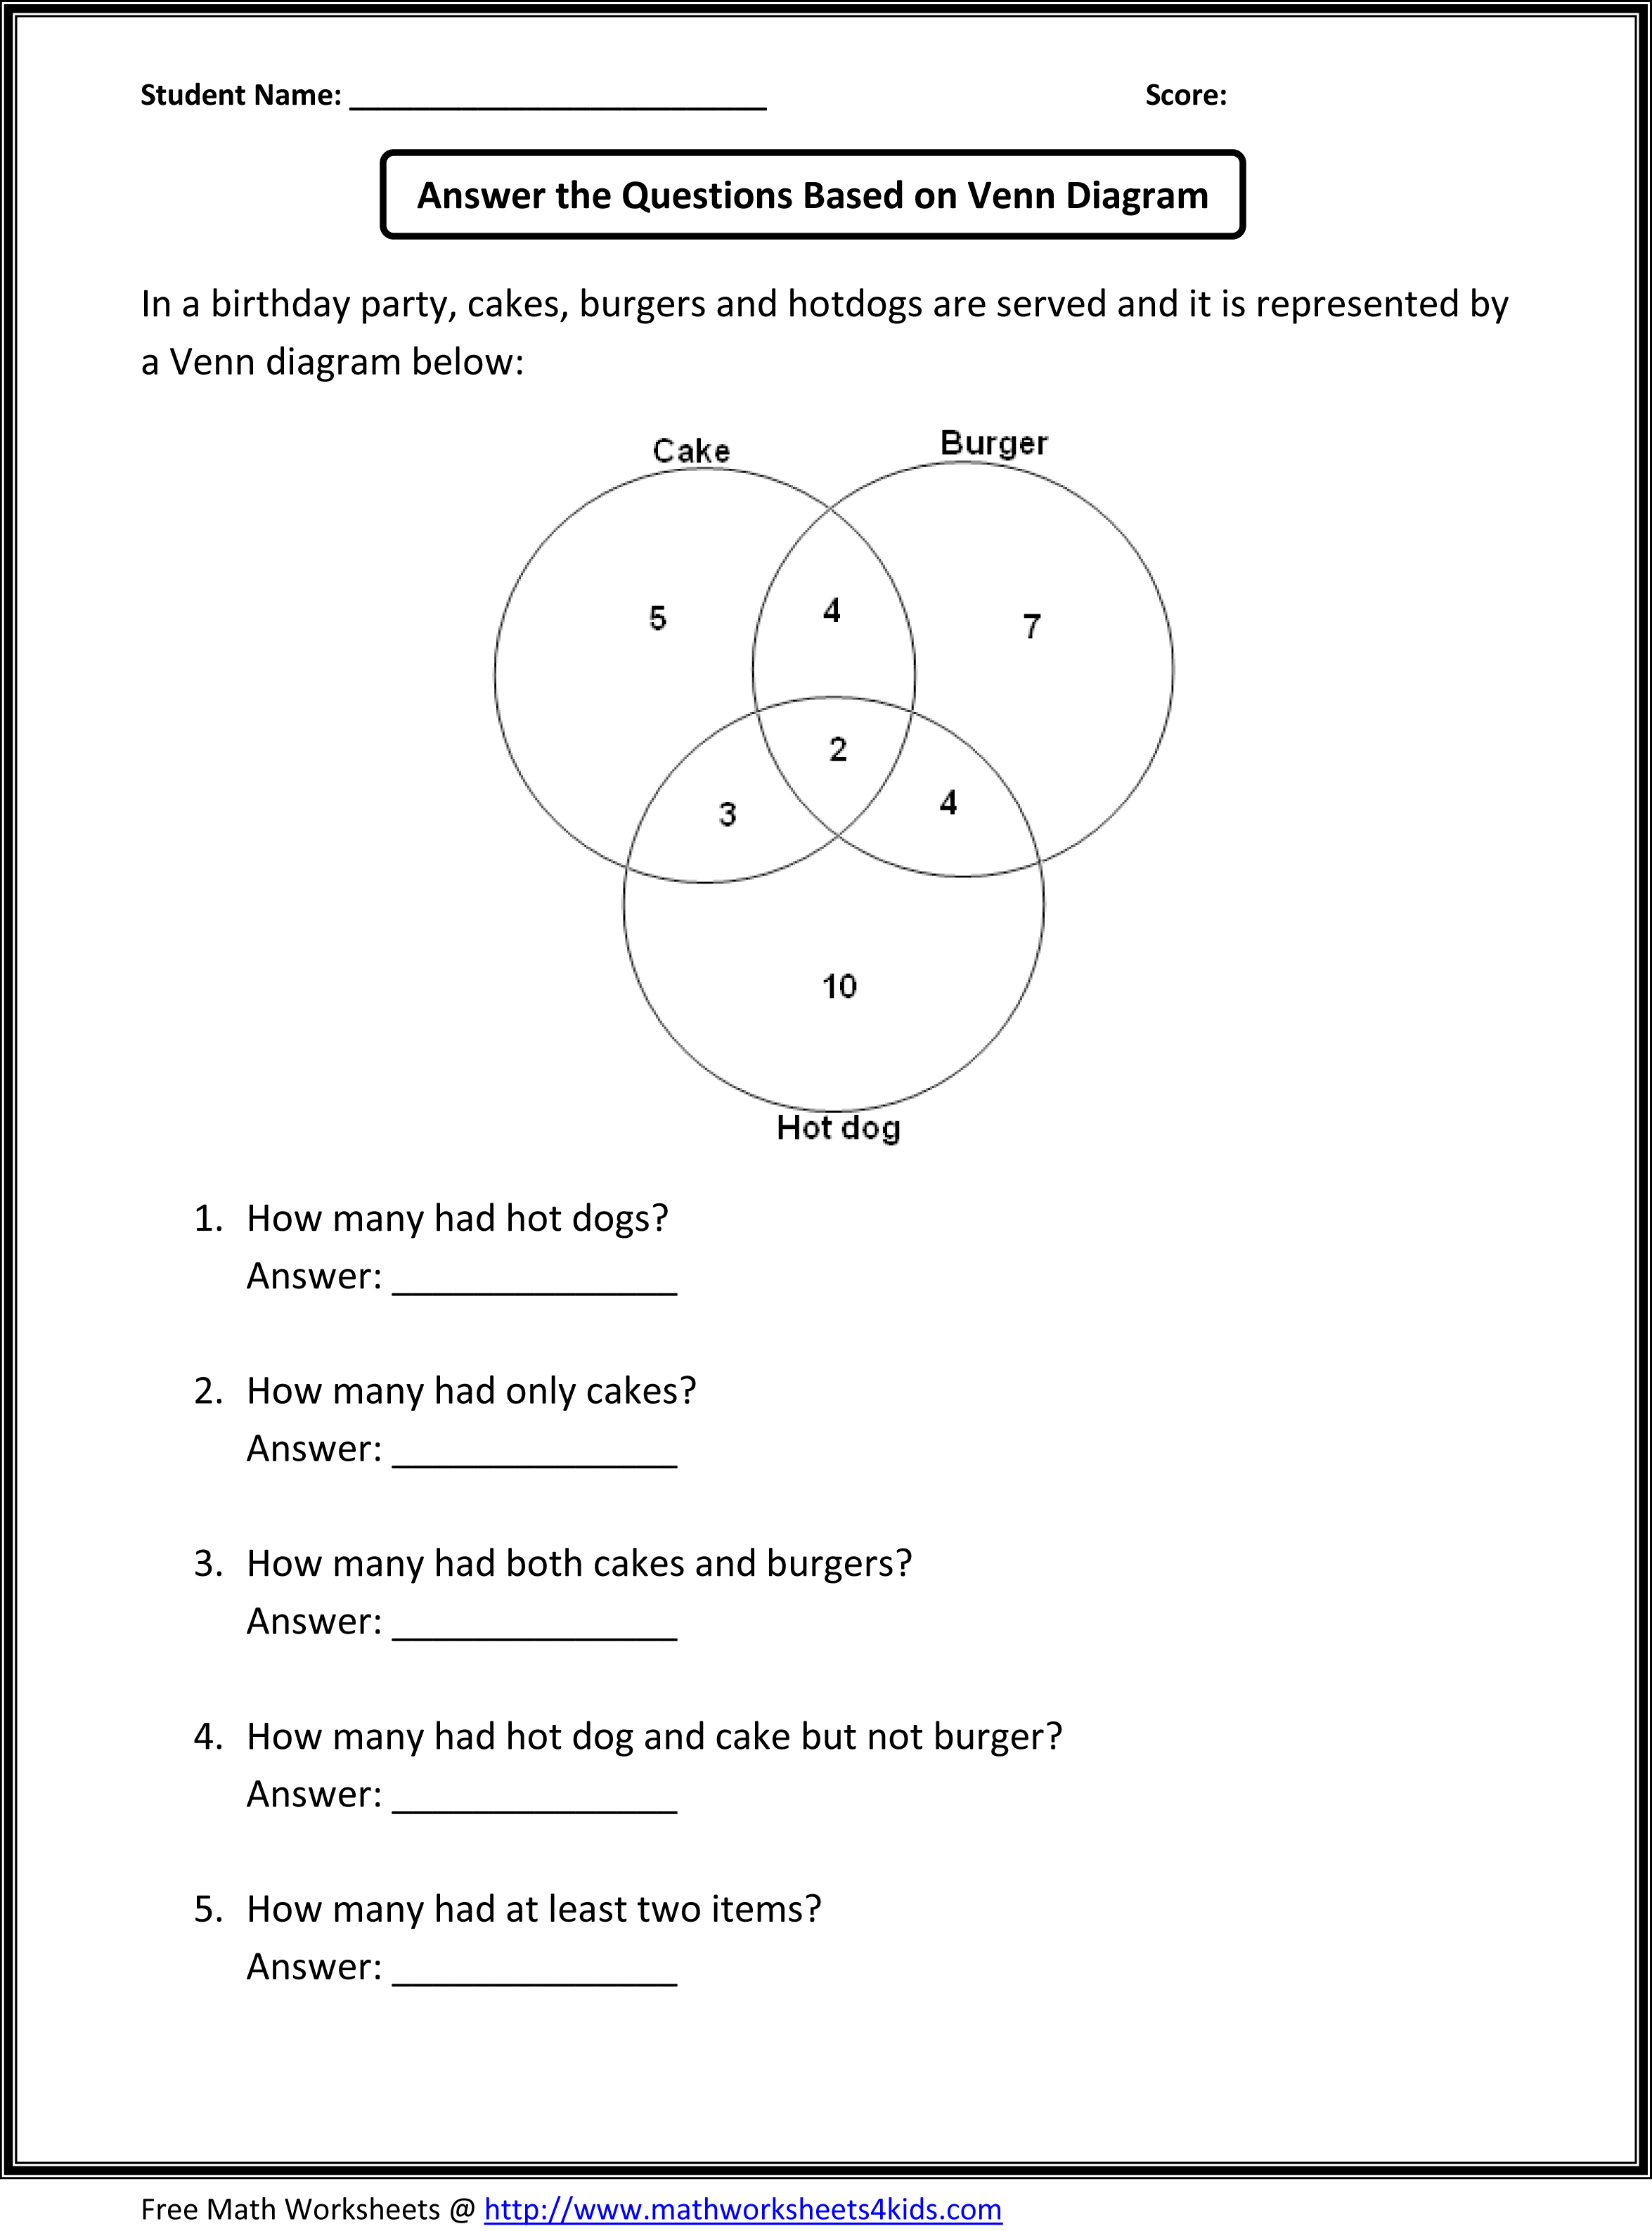 math worksheet : free 5th grade math problems worksheets  worksheets on study  : 5th Grade Math Word Problem Worksheets